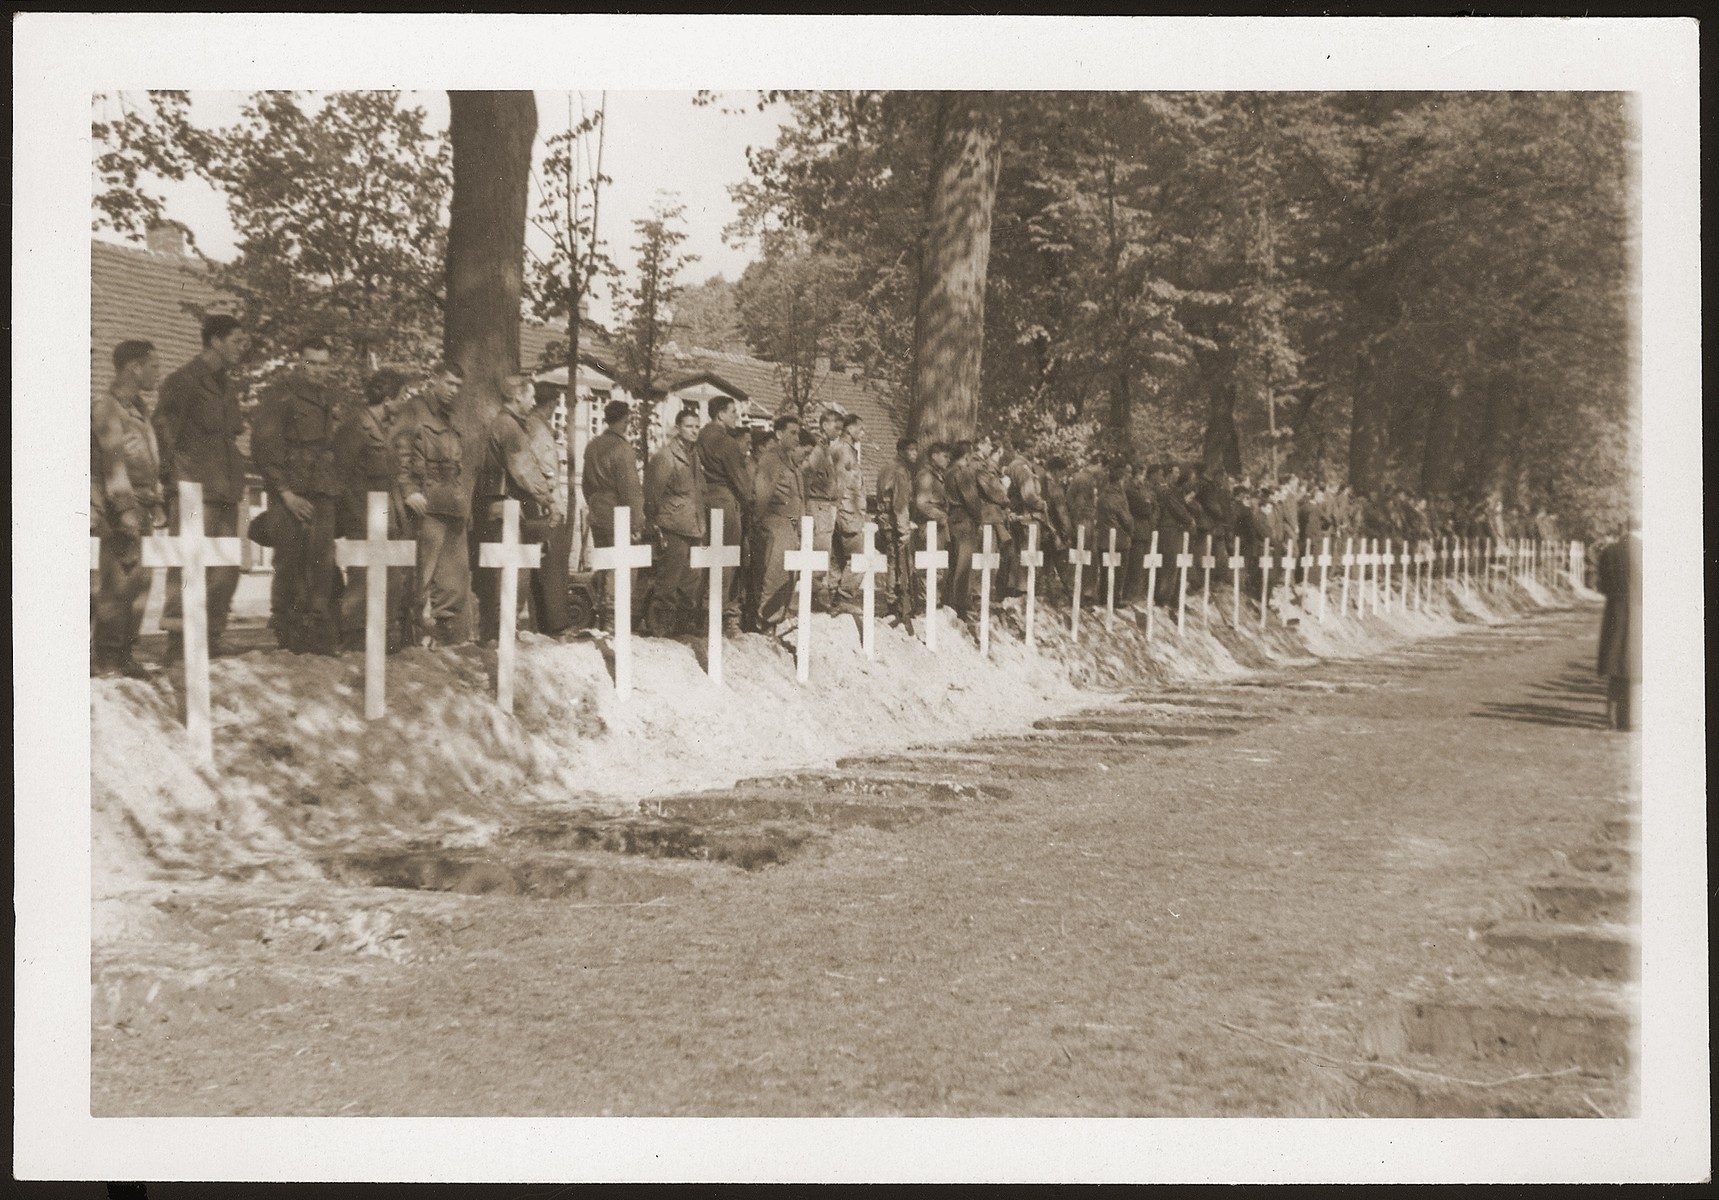 American soldiers stand behind a row of graves at the mass funeral in Ludwigslust on the palace grounds of the Archduke of Mecklenburg, where they forced the townspeople to bury the bodies of prisoners killed in the Woebbelin concentration camp.